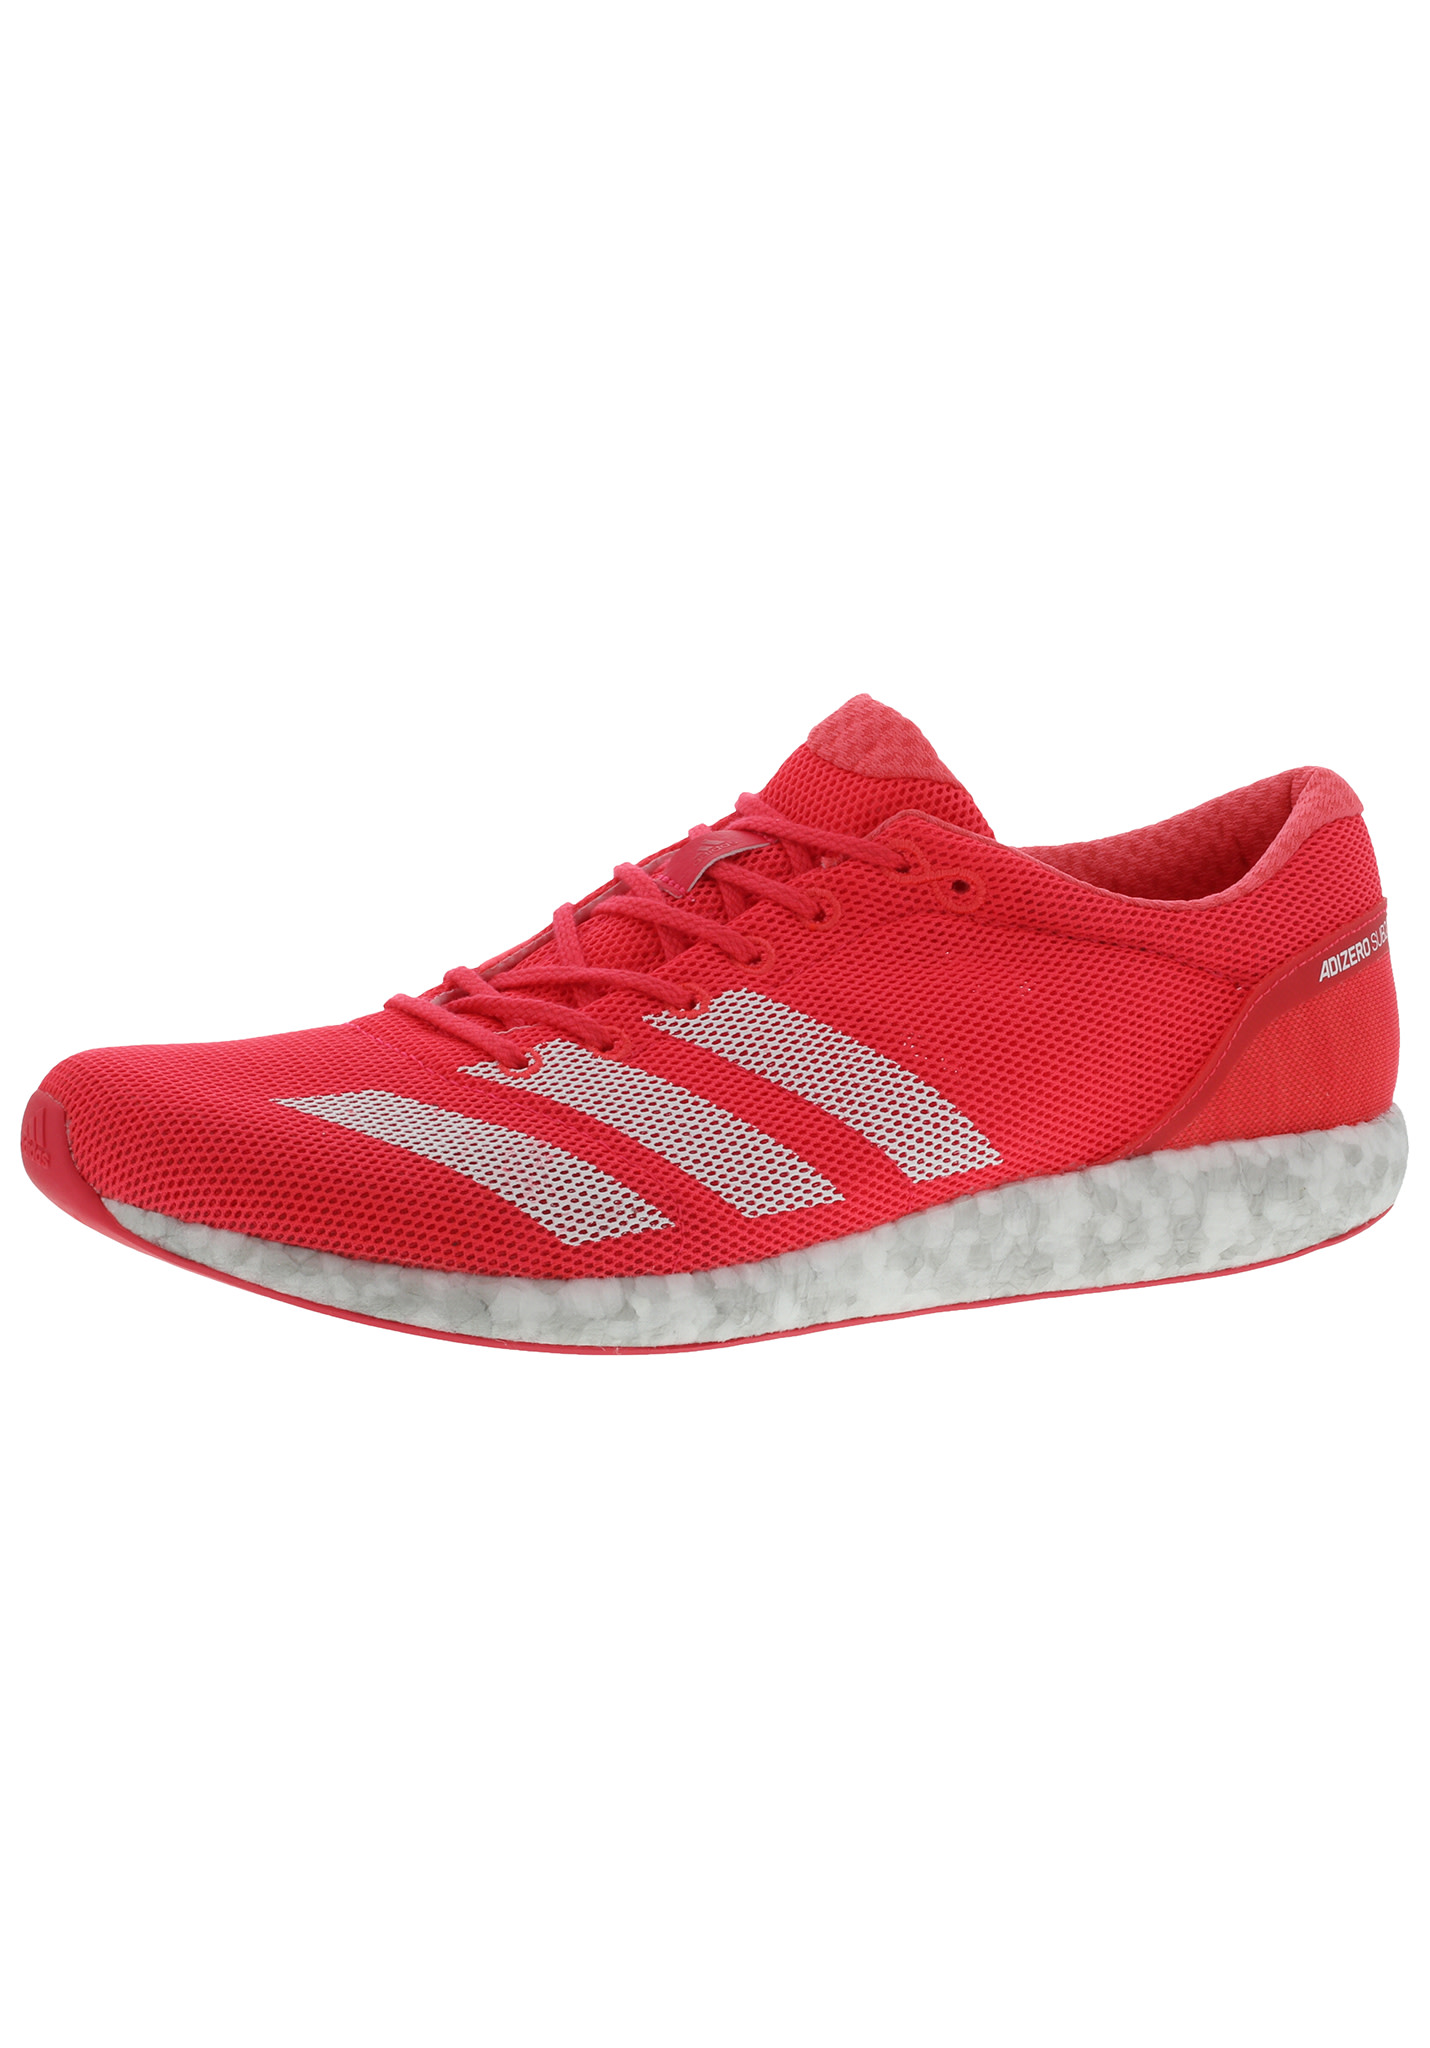 new style 01b1d 87e9b adidas adiZero Sub2 - Running shoes for Men - Red   21RUN